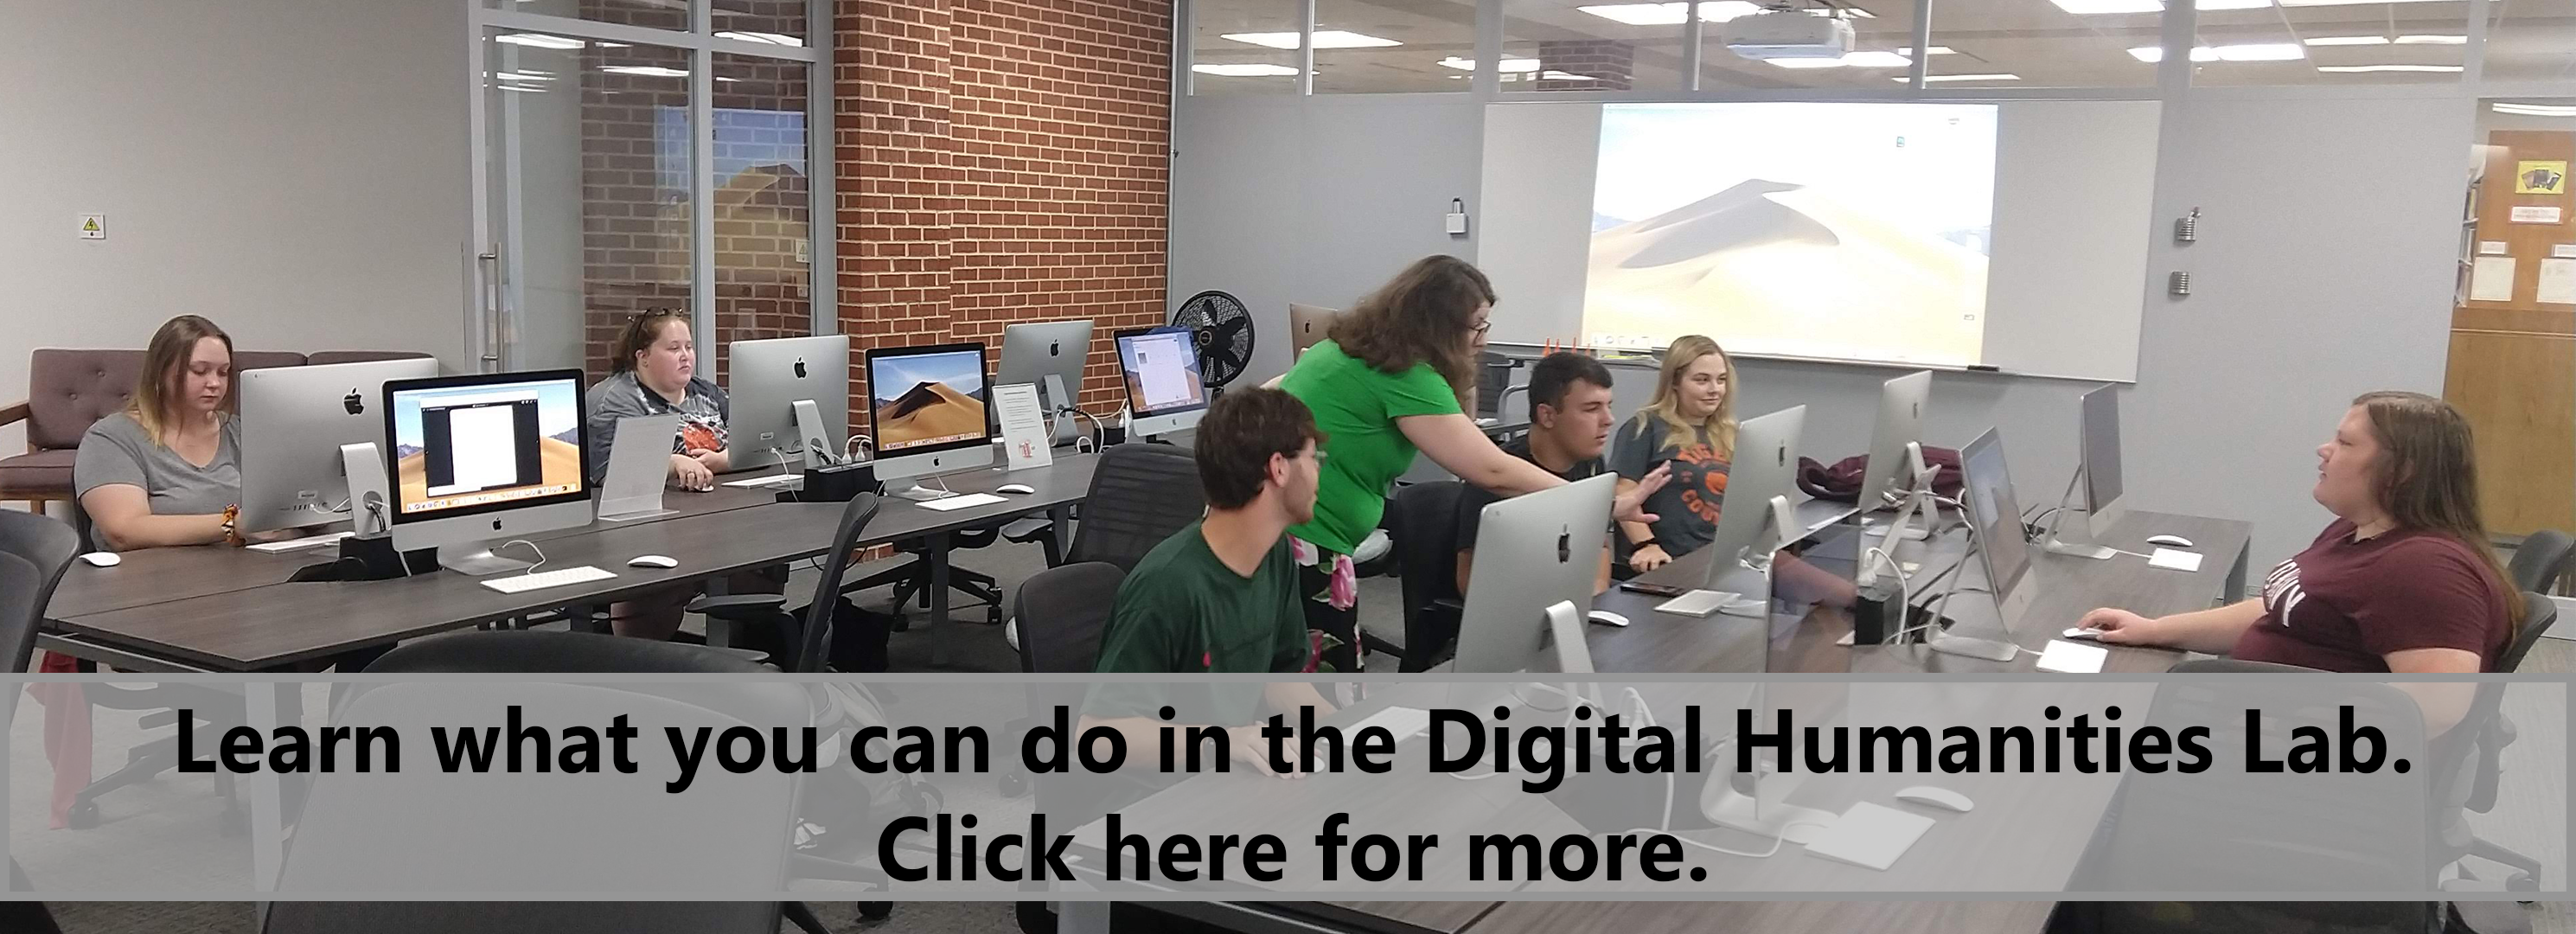 Learn what you can do in the digital humanities lab. Click here for more.